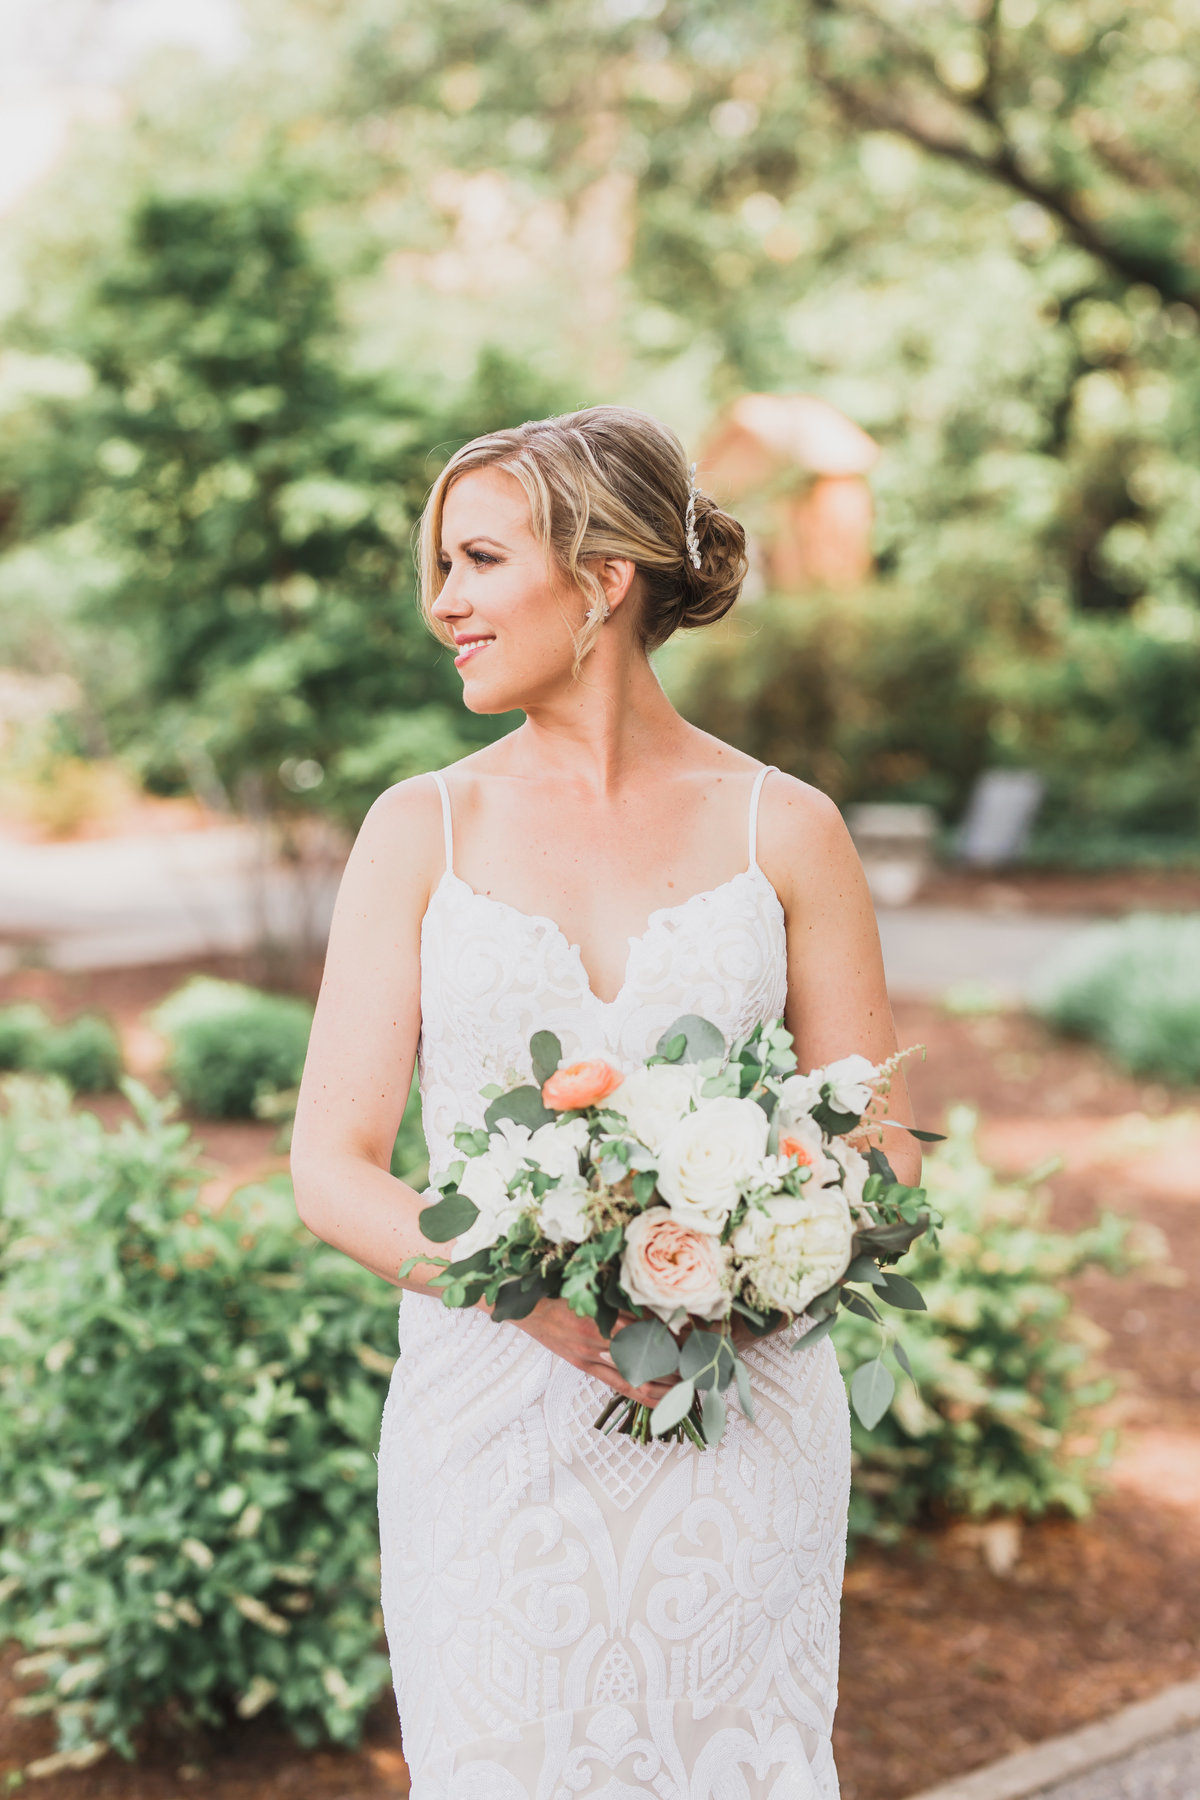 Washington D.C. Wedding Photographer - M Harris Studios-357